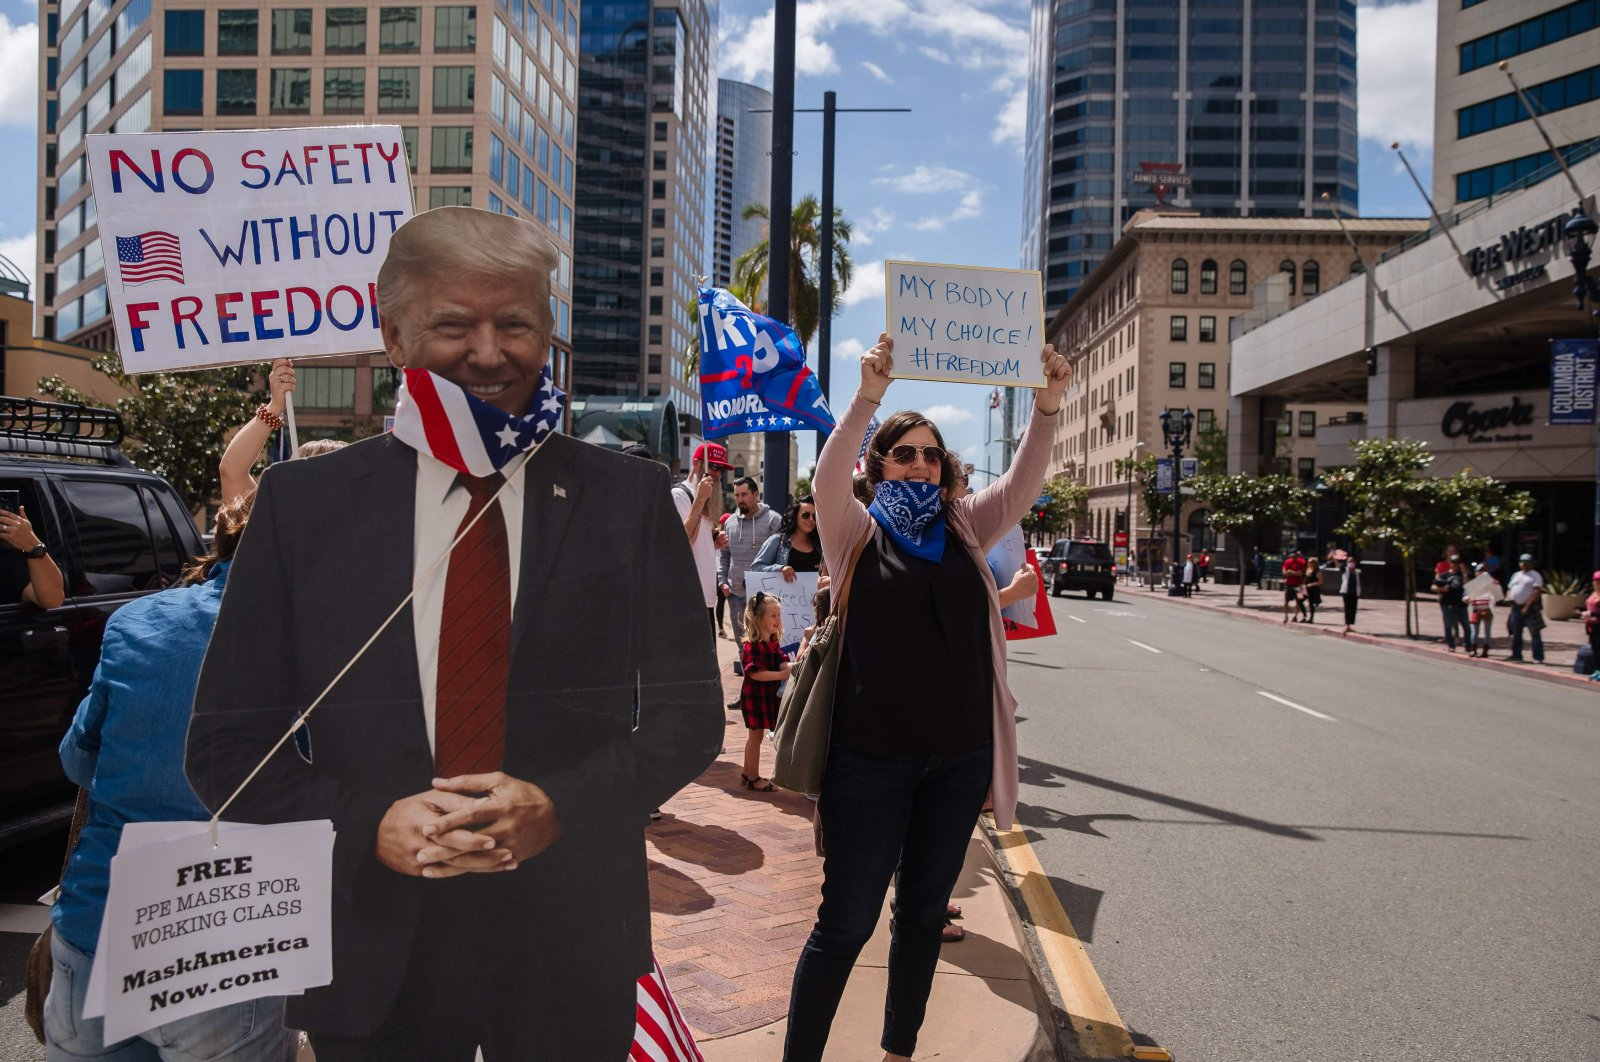 A Trump cutout with a US flag around its neck is seen next to protesters rallying in downtown San Diego against California's stay at home order to prevent the spread of the novel coronavirus, which causes COVID-19, on April 18, 2020. (AFP Photo)